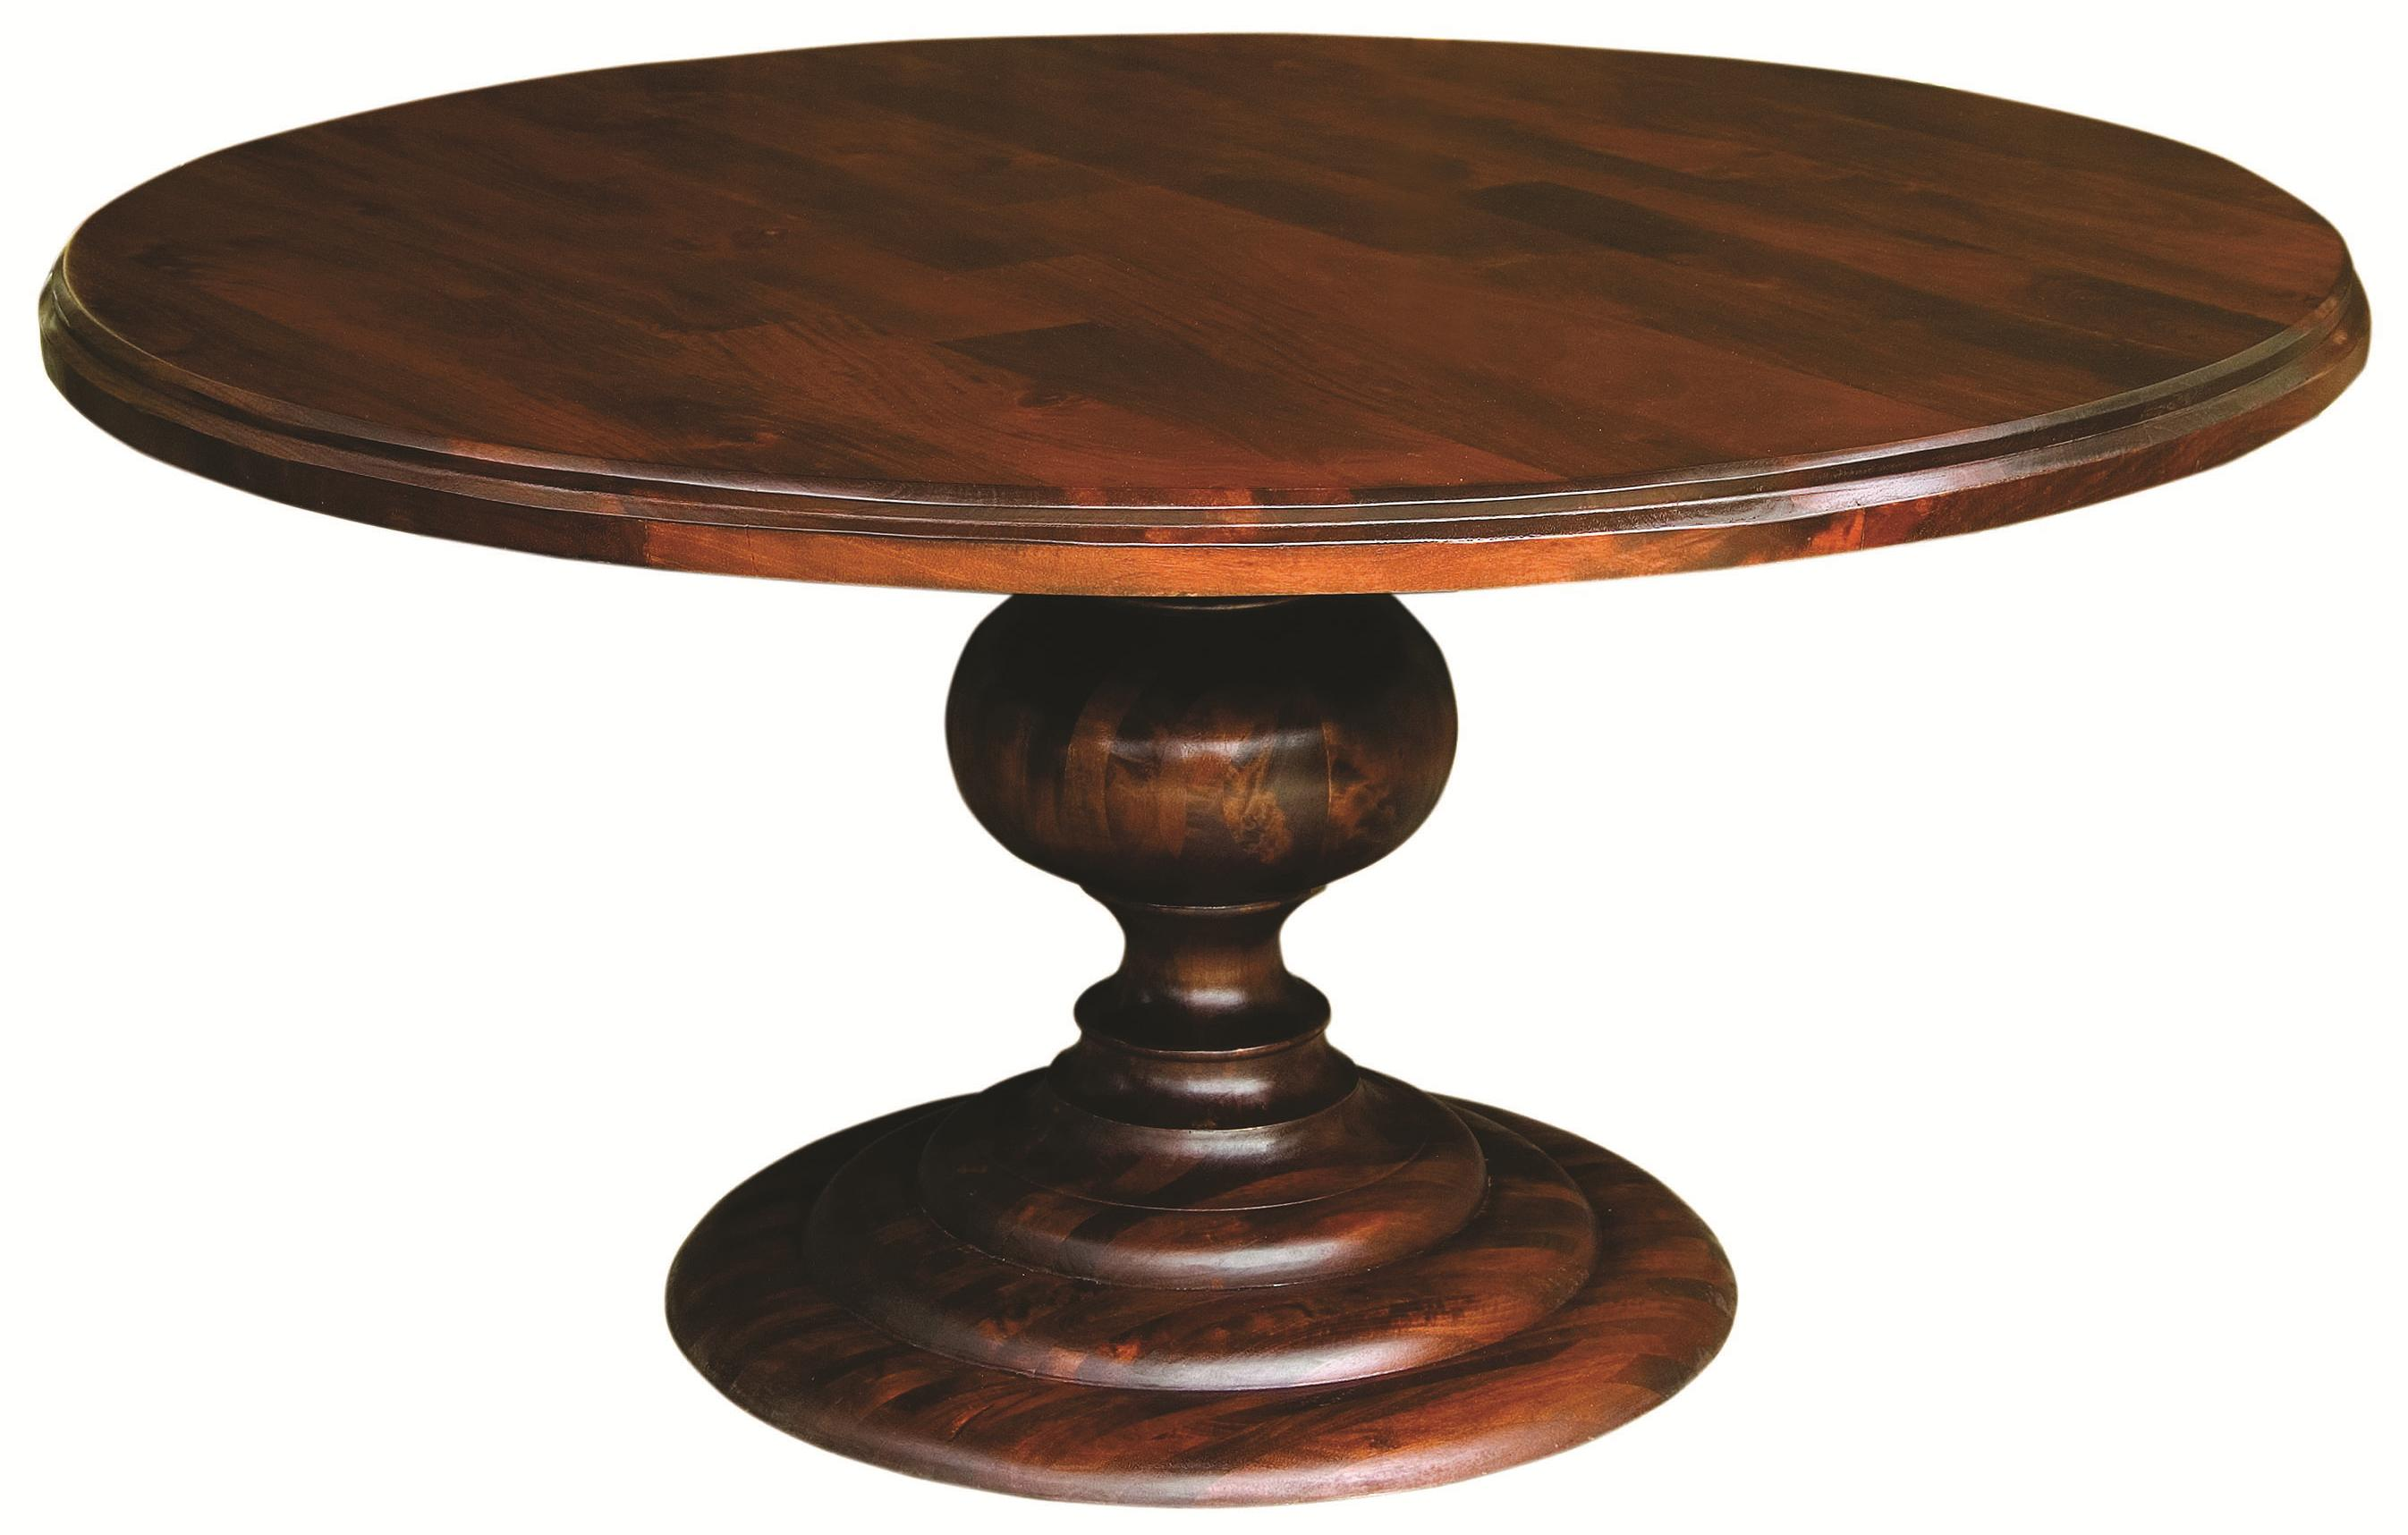 Four Hands Magnolia 60quot Round Dining Table With Pedestal